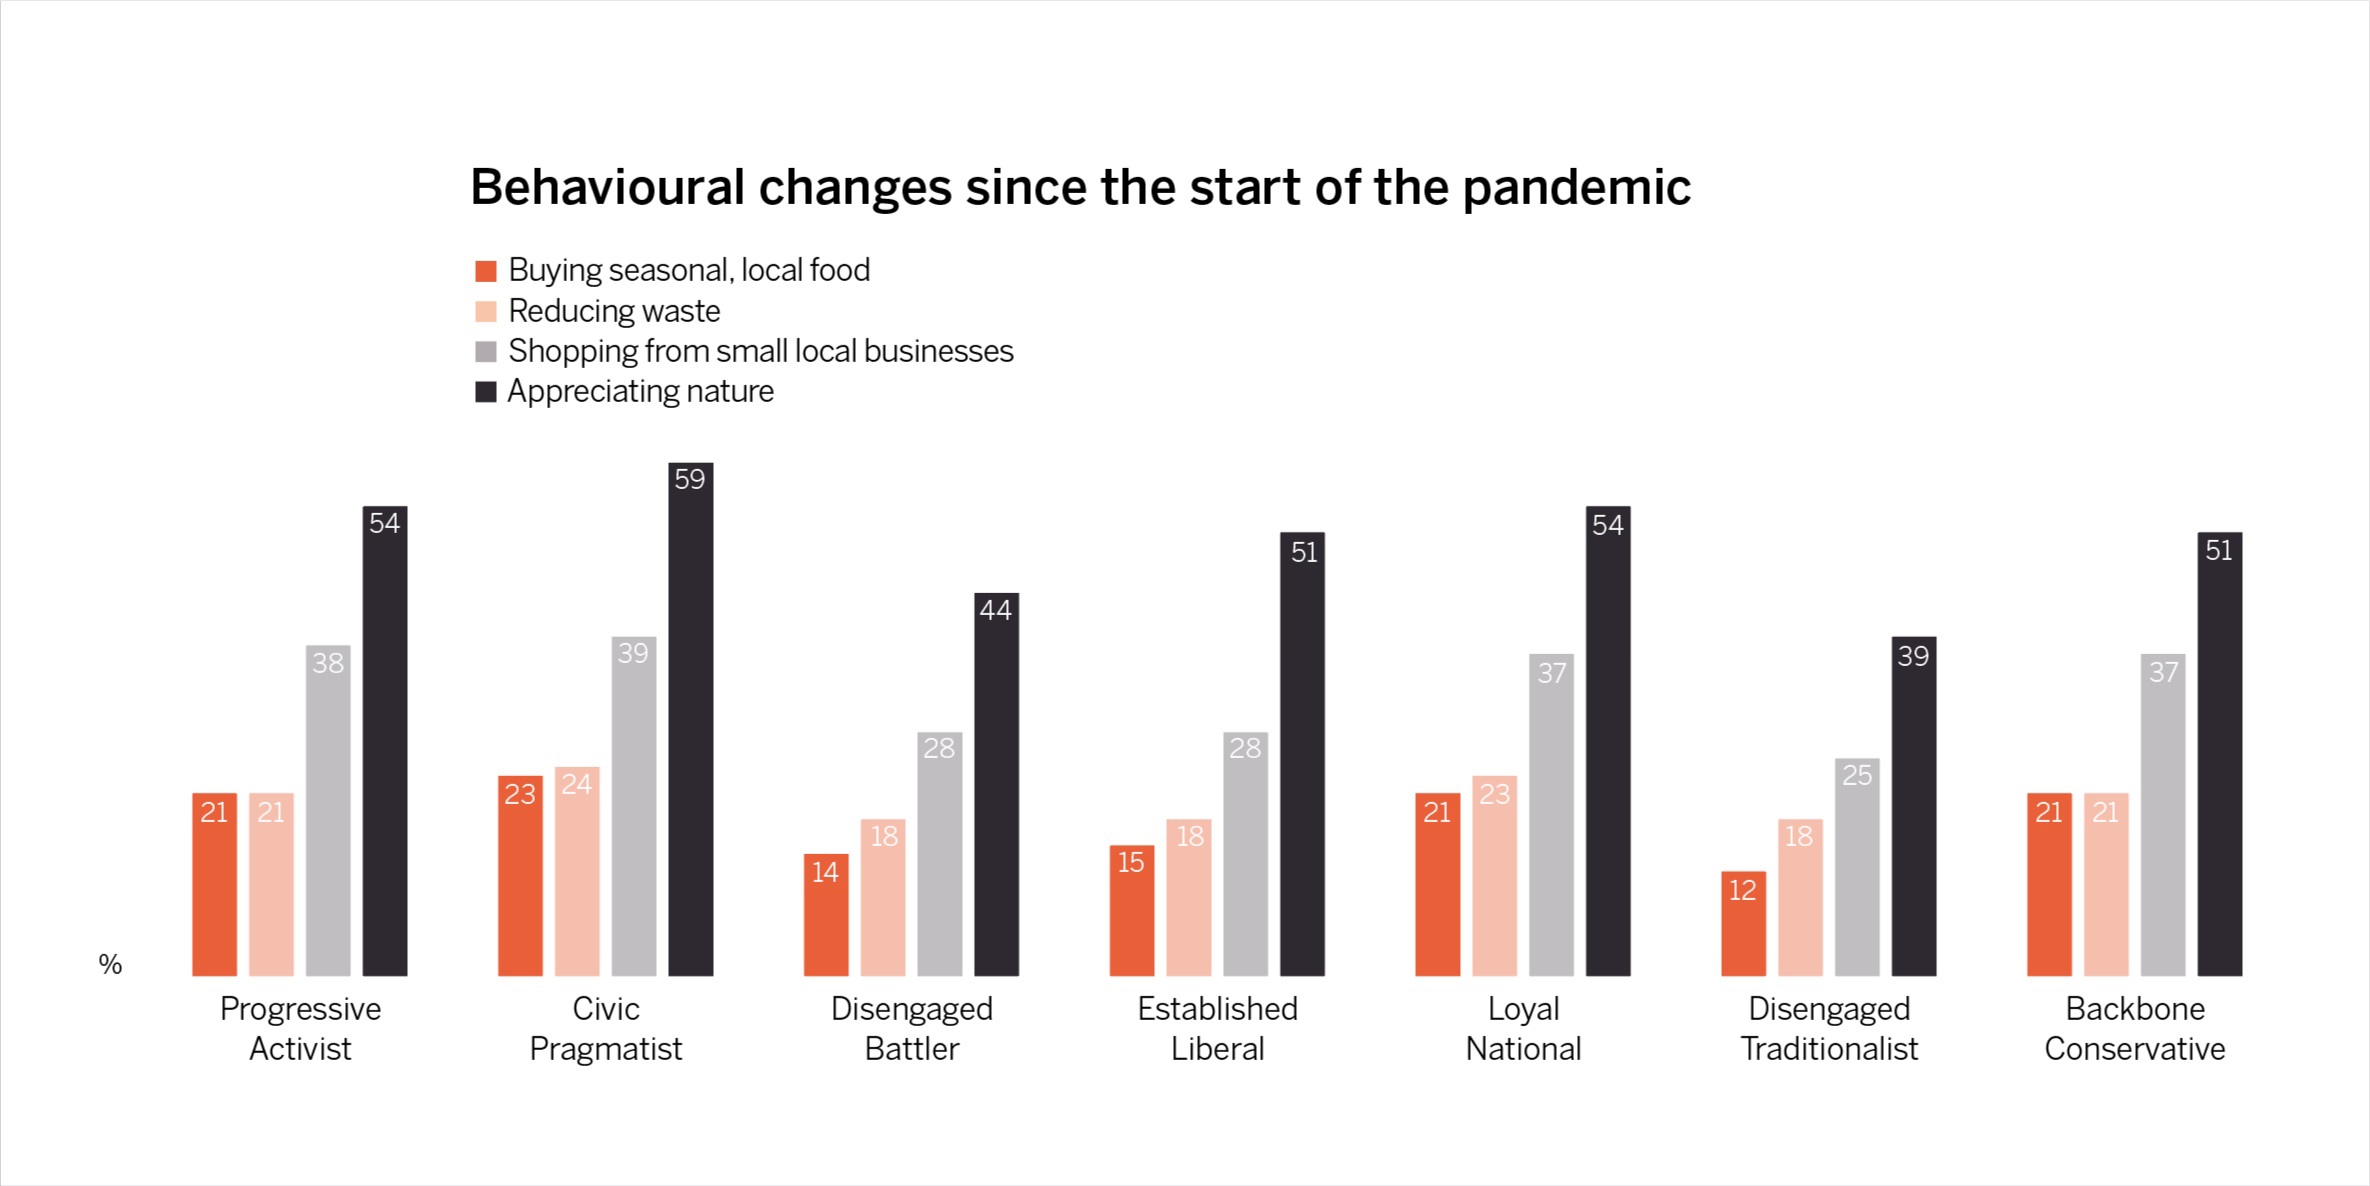 Behaviours that have increased since the onset of the pandemic